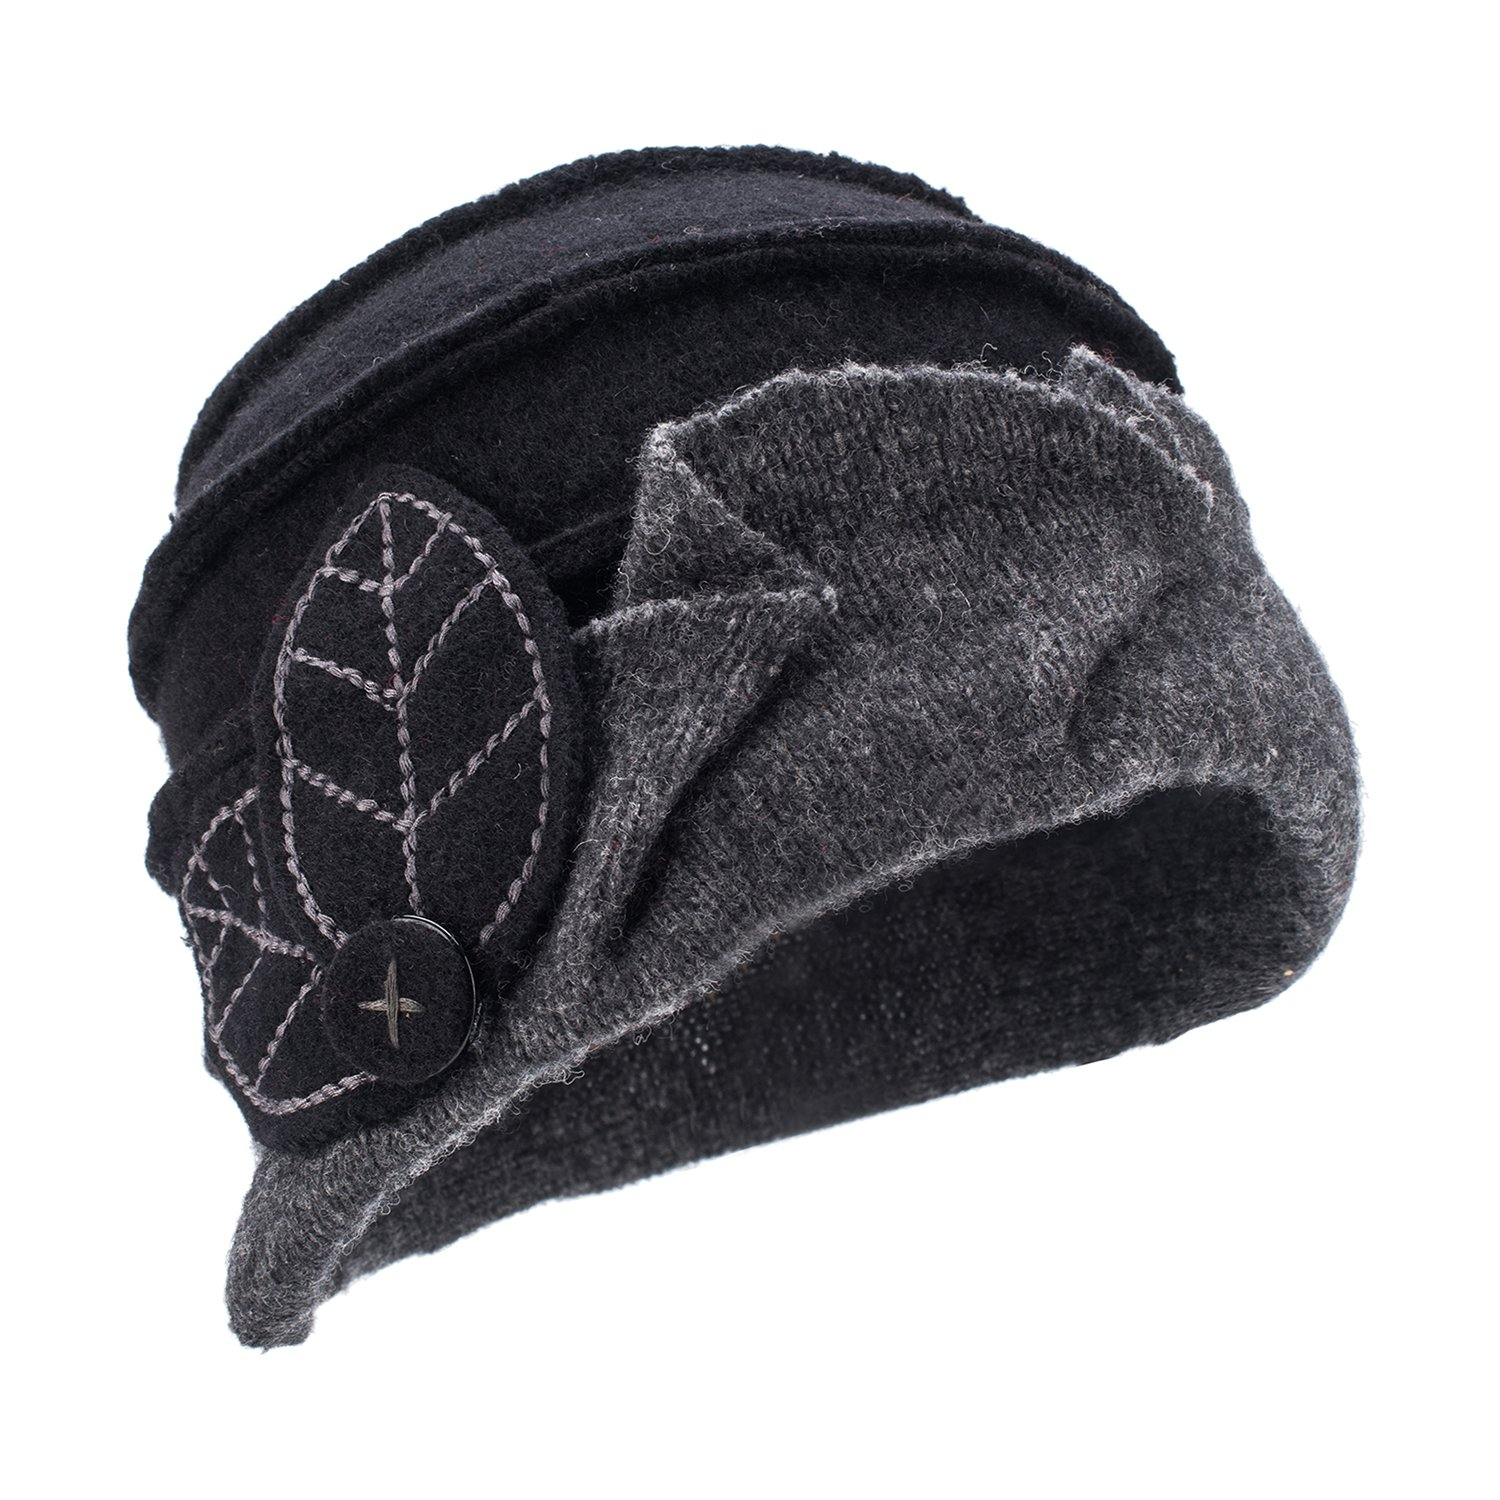 Lawliet Two-Tone Womens Ladies Winter 1920s 100% Wool Leaf Bucket Beret Cap Hat A375 (Black Top Gray Trim)